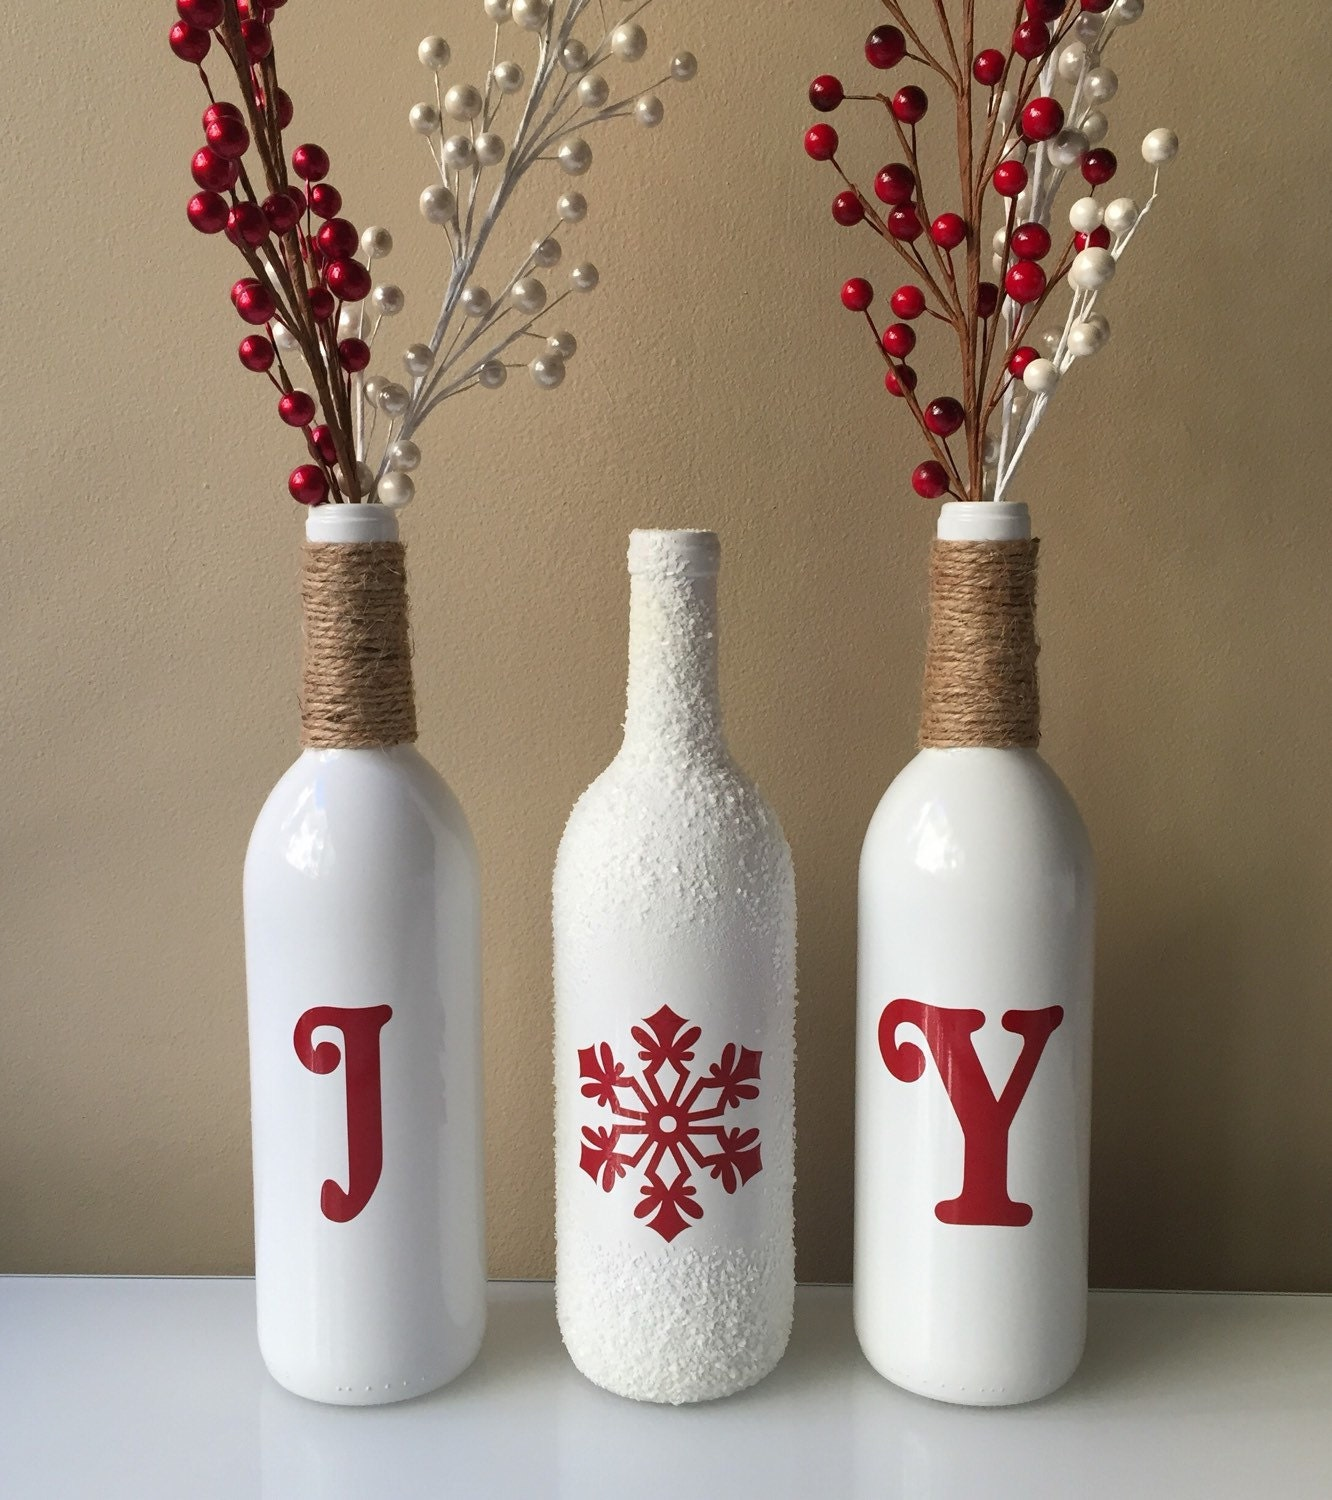 Joy wine bottles christmas decorations snow wine bottles for Christmas bottle decorations